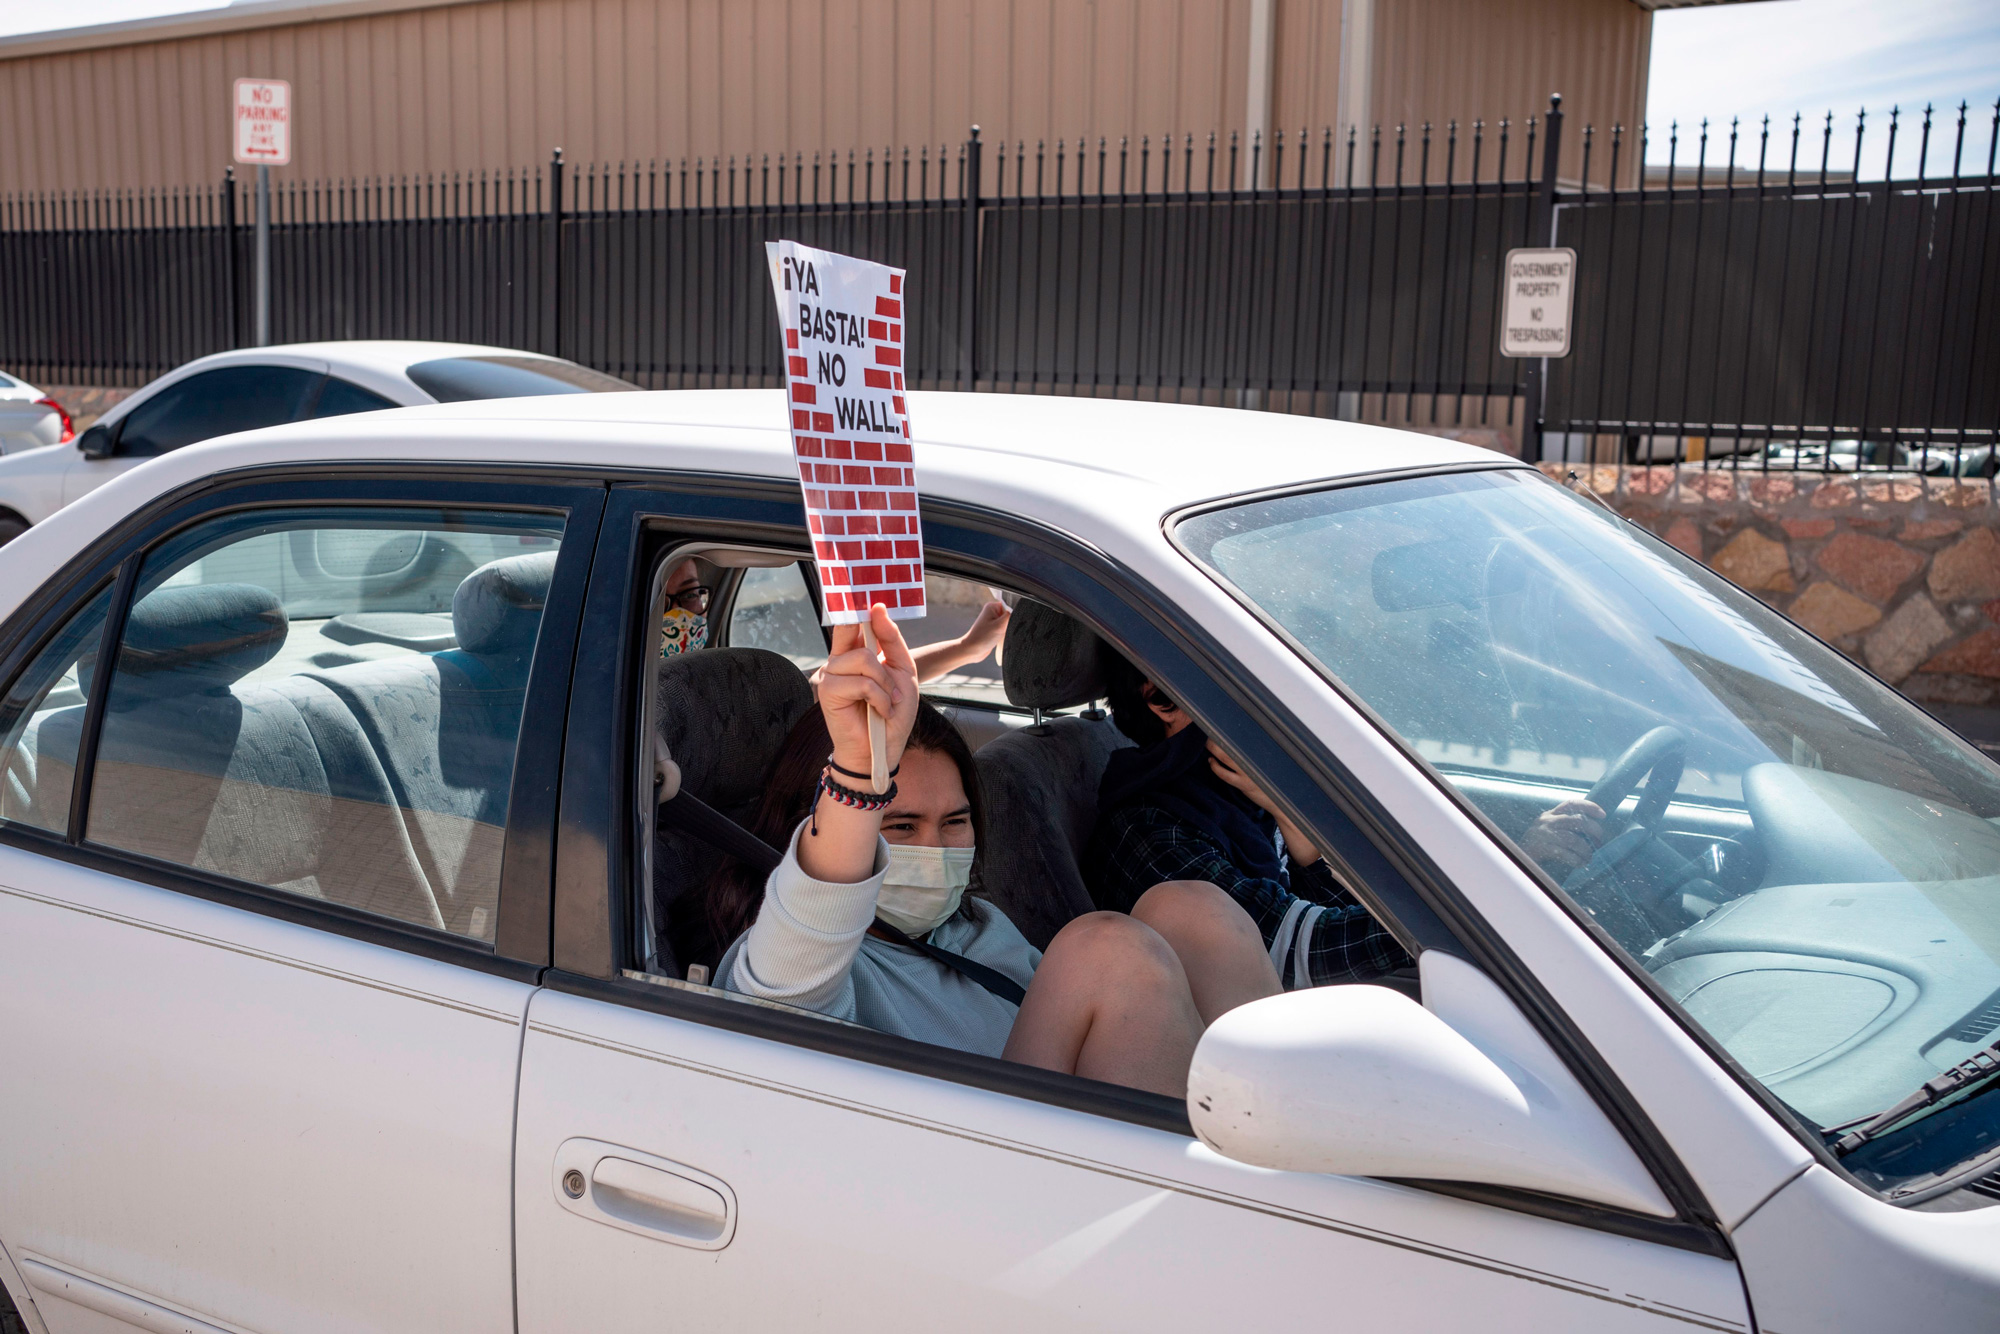 Protesters drive in a caravan around Immigration and Customs Enforcement El Paso Processing Center to demand the release of ICE detainees due to safety concerns amidst the COVID-19 outbreak on April 16, 2020 in El Paso, Texas. - One detainee has already tested positive in the nearby Otero County Processing Center in New Mexico, and more cases are feared to appear in the detention centers where social distancing is often not an option. (Photo by Paul Ratje / Agence France-Presse / AFP) (Photo by PAUL RATJE/Agence France-Presse/AFP via Getty Images)